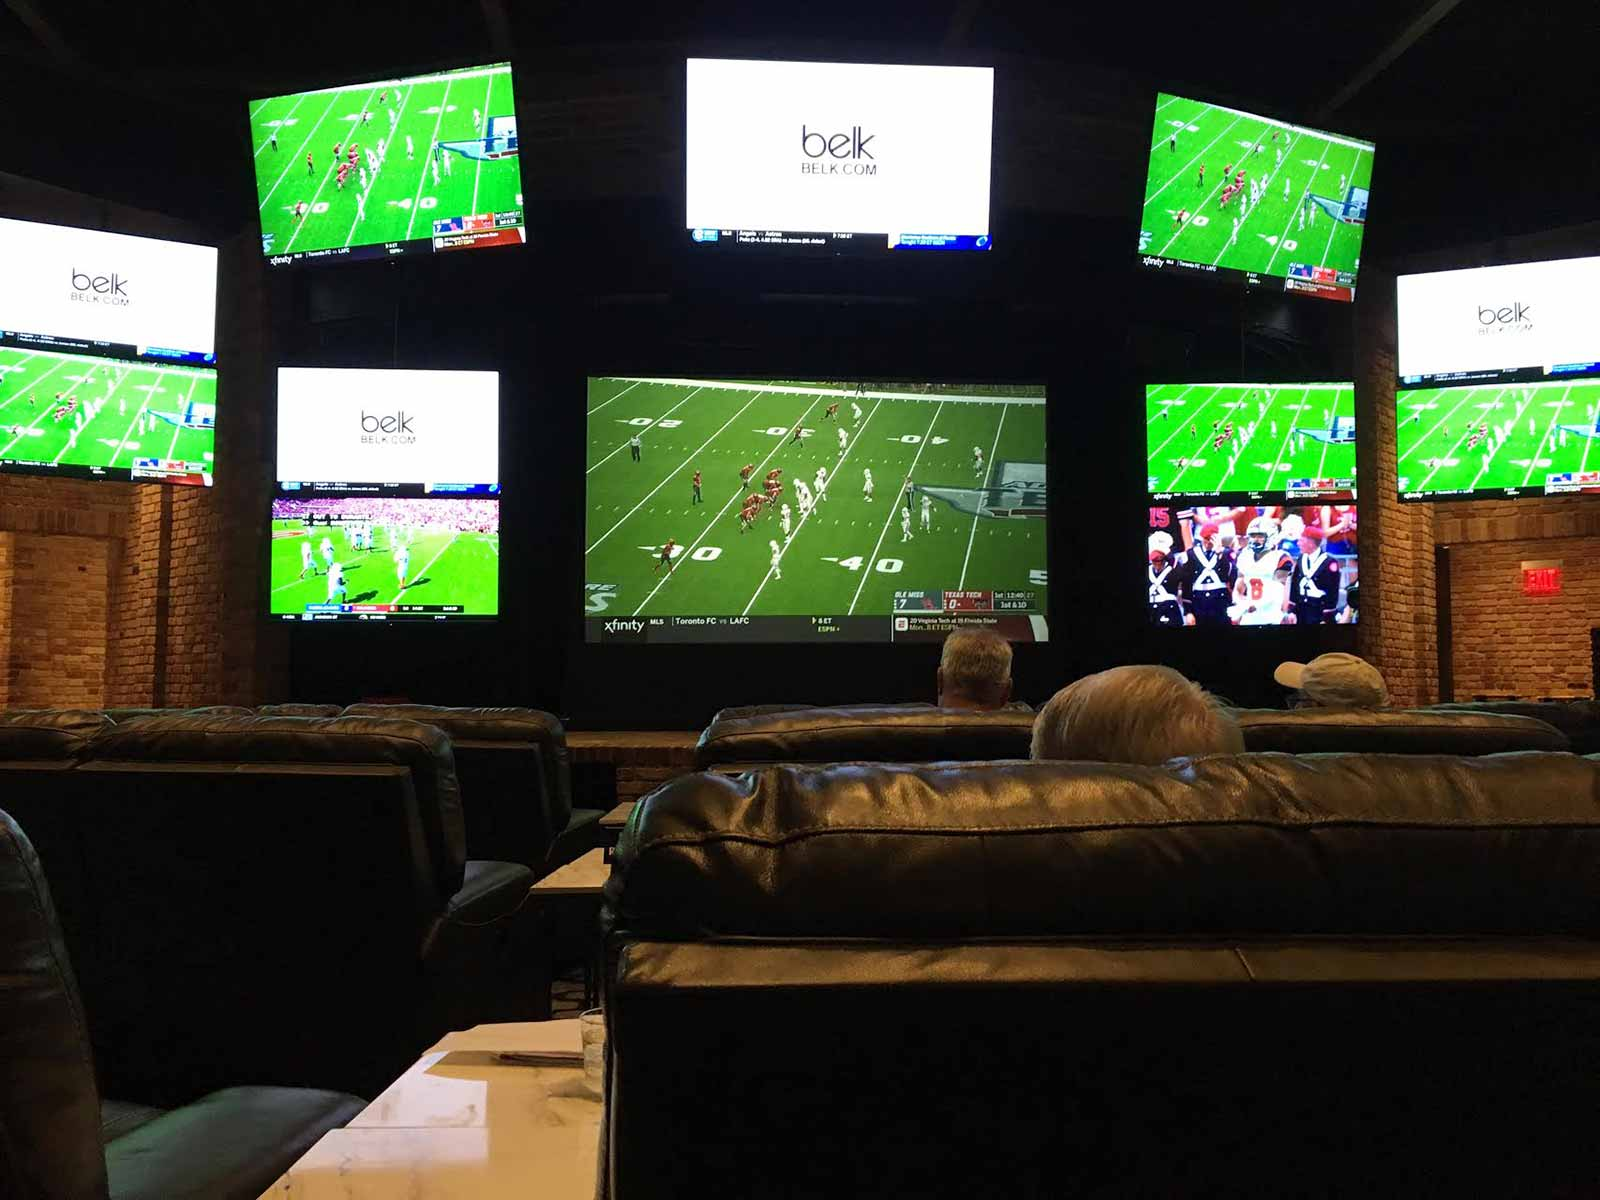 The Beau Rivage sports book in Biloxi